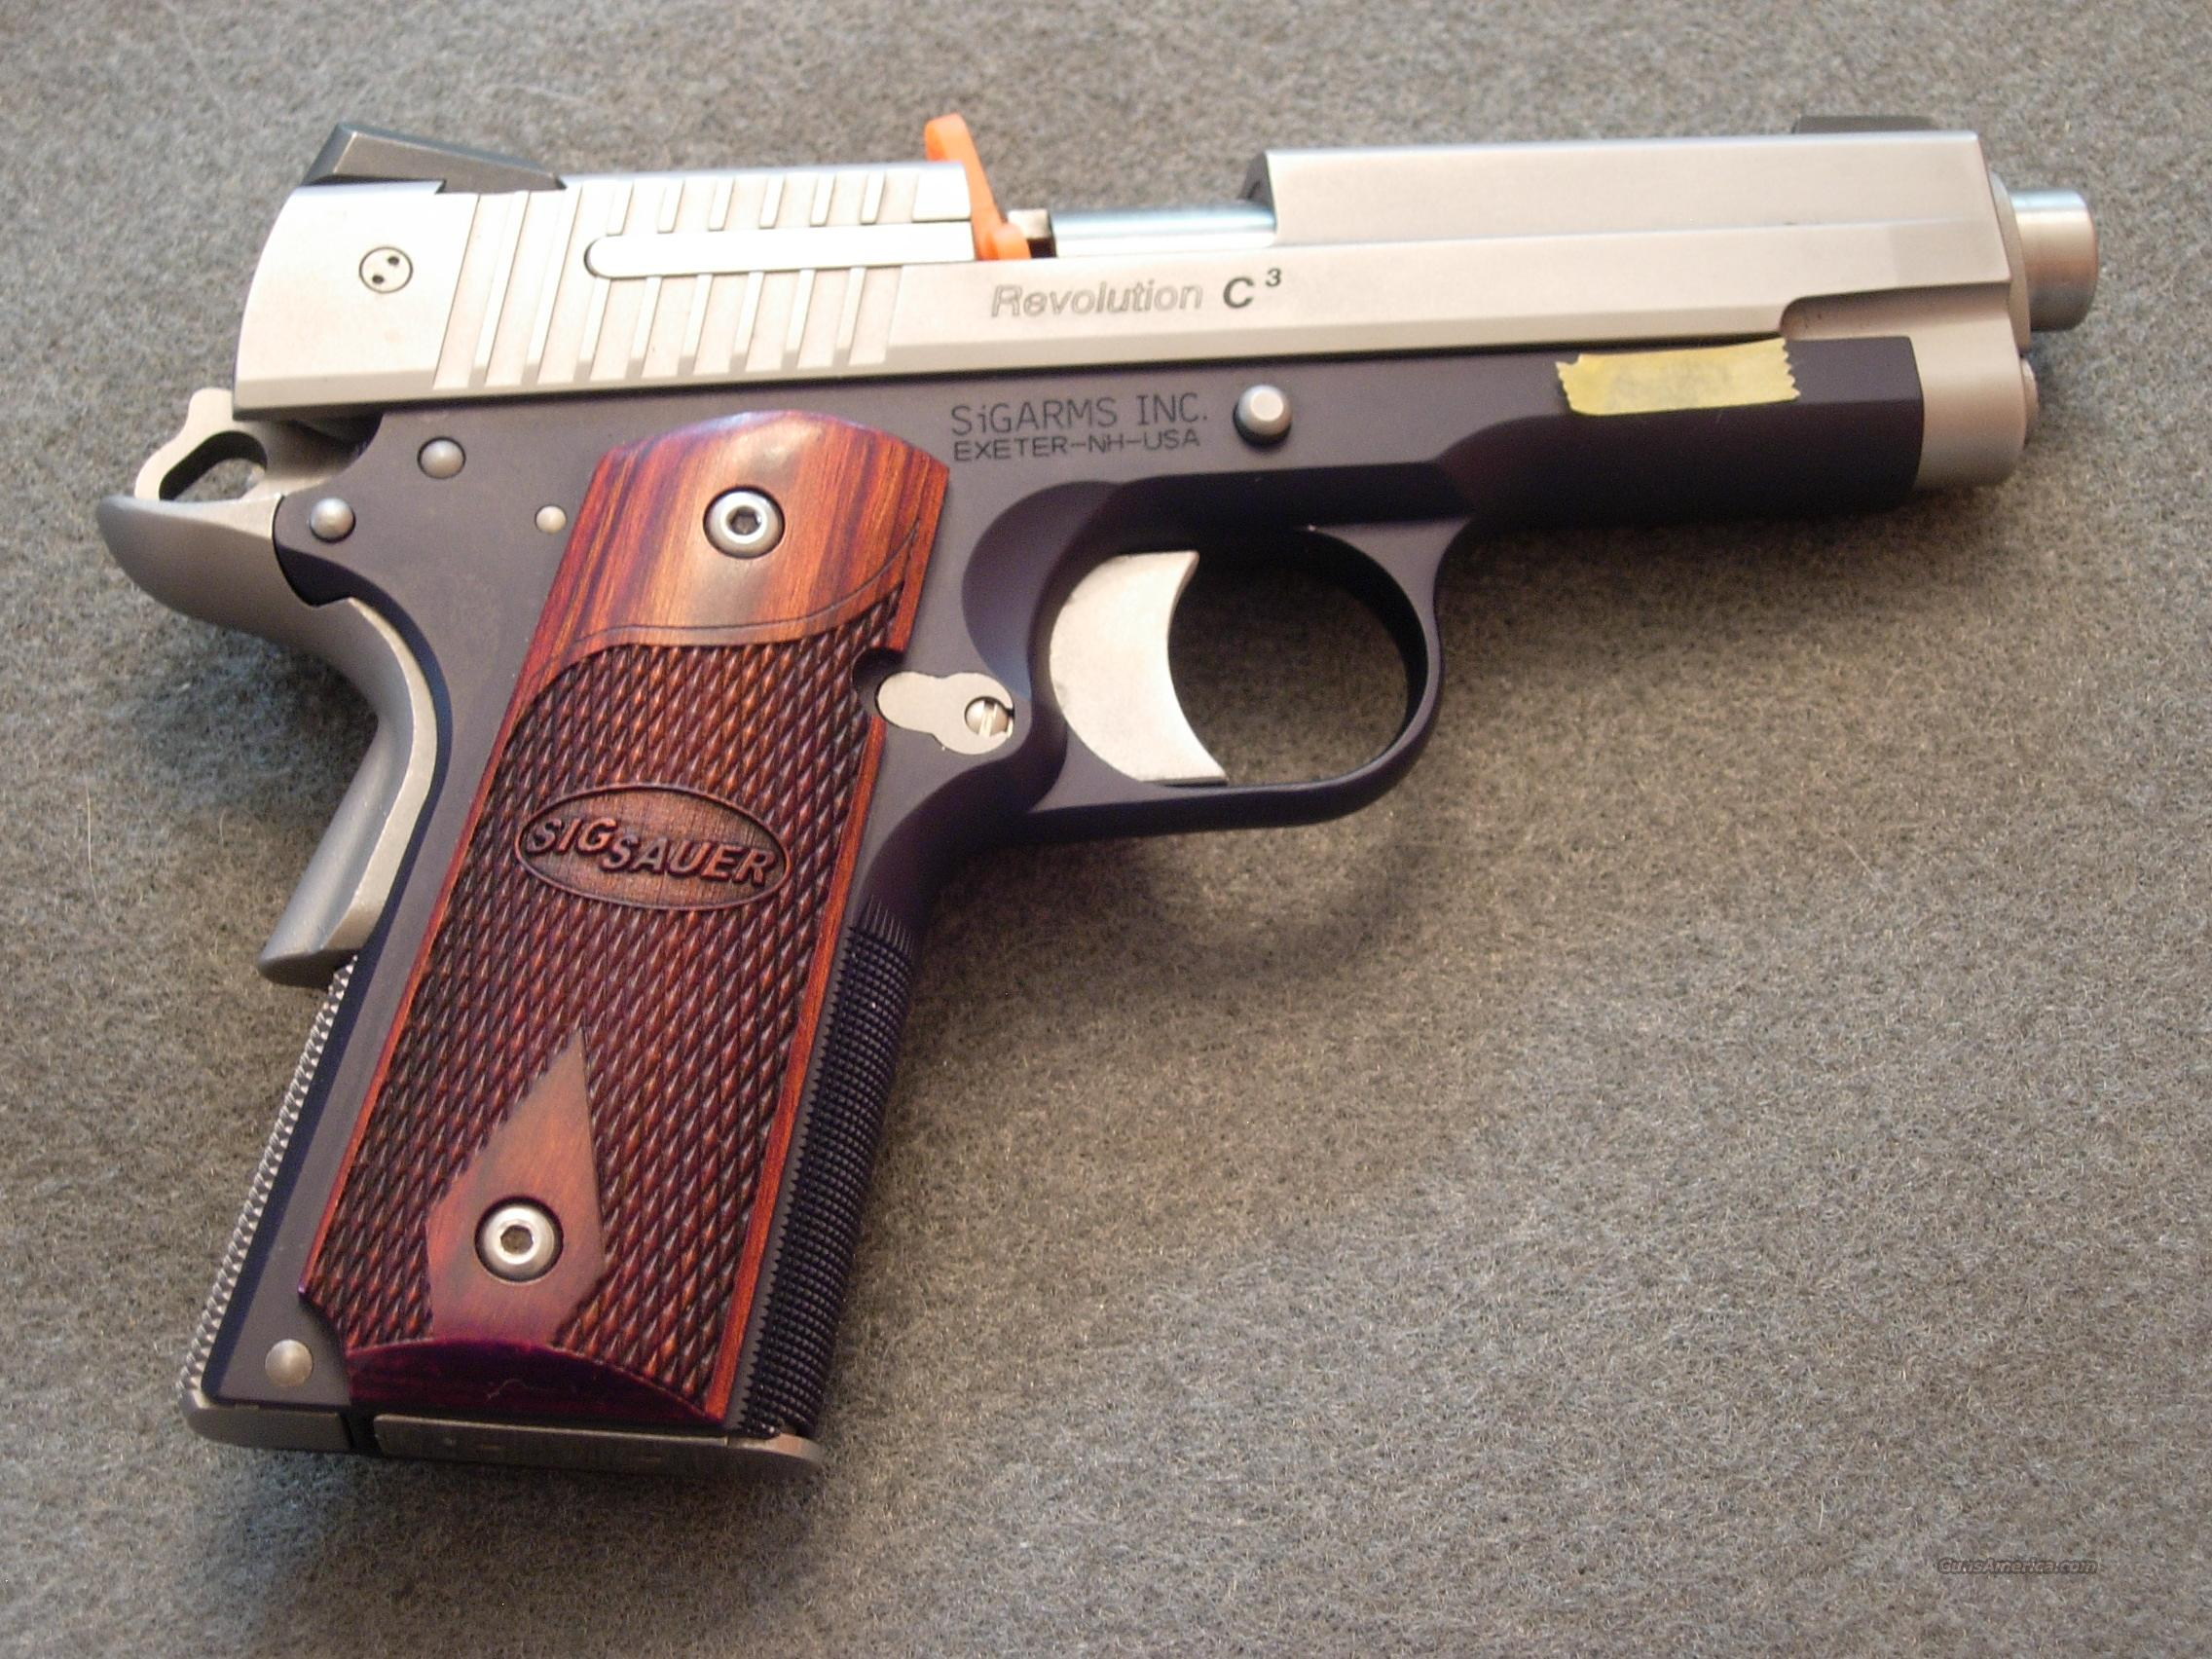 SIGARMS REVOLUTION C3  .45 ACP  Guns > Pistols > Sig - Sauer/Sigarms Pistols > 1911